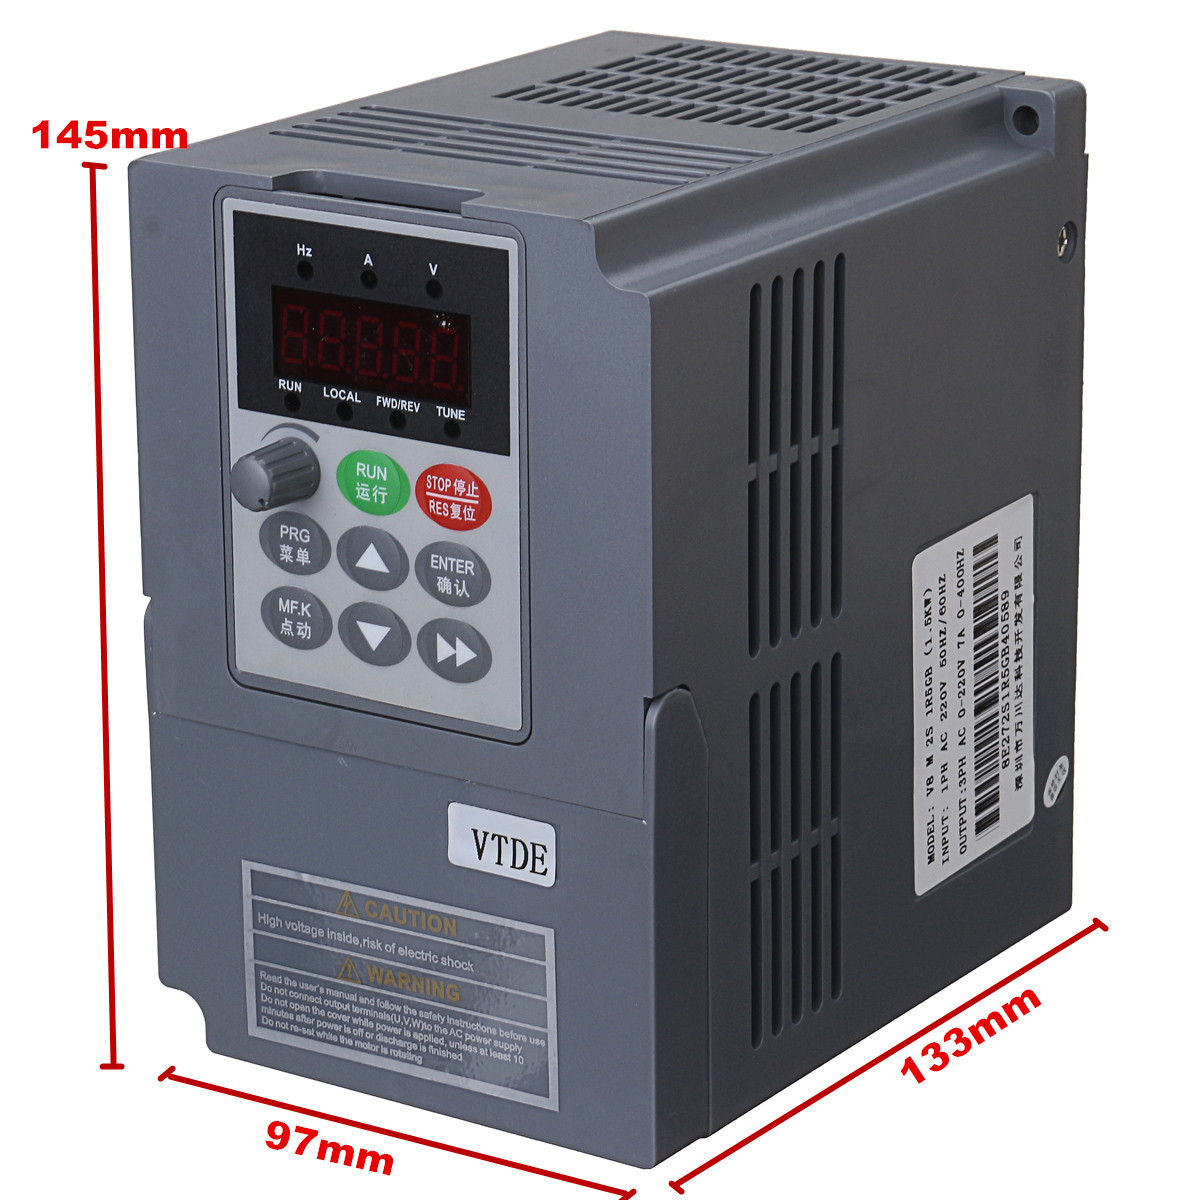 Single Phase Inverter : Kw v ac a single phase variable frequency inverter